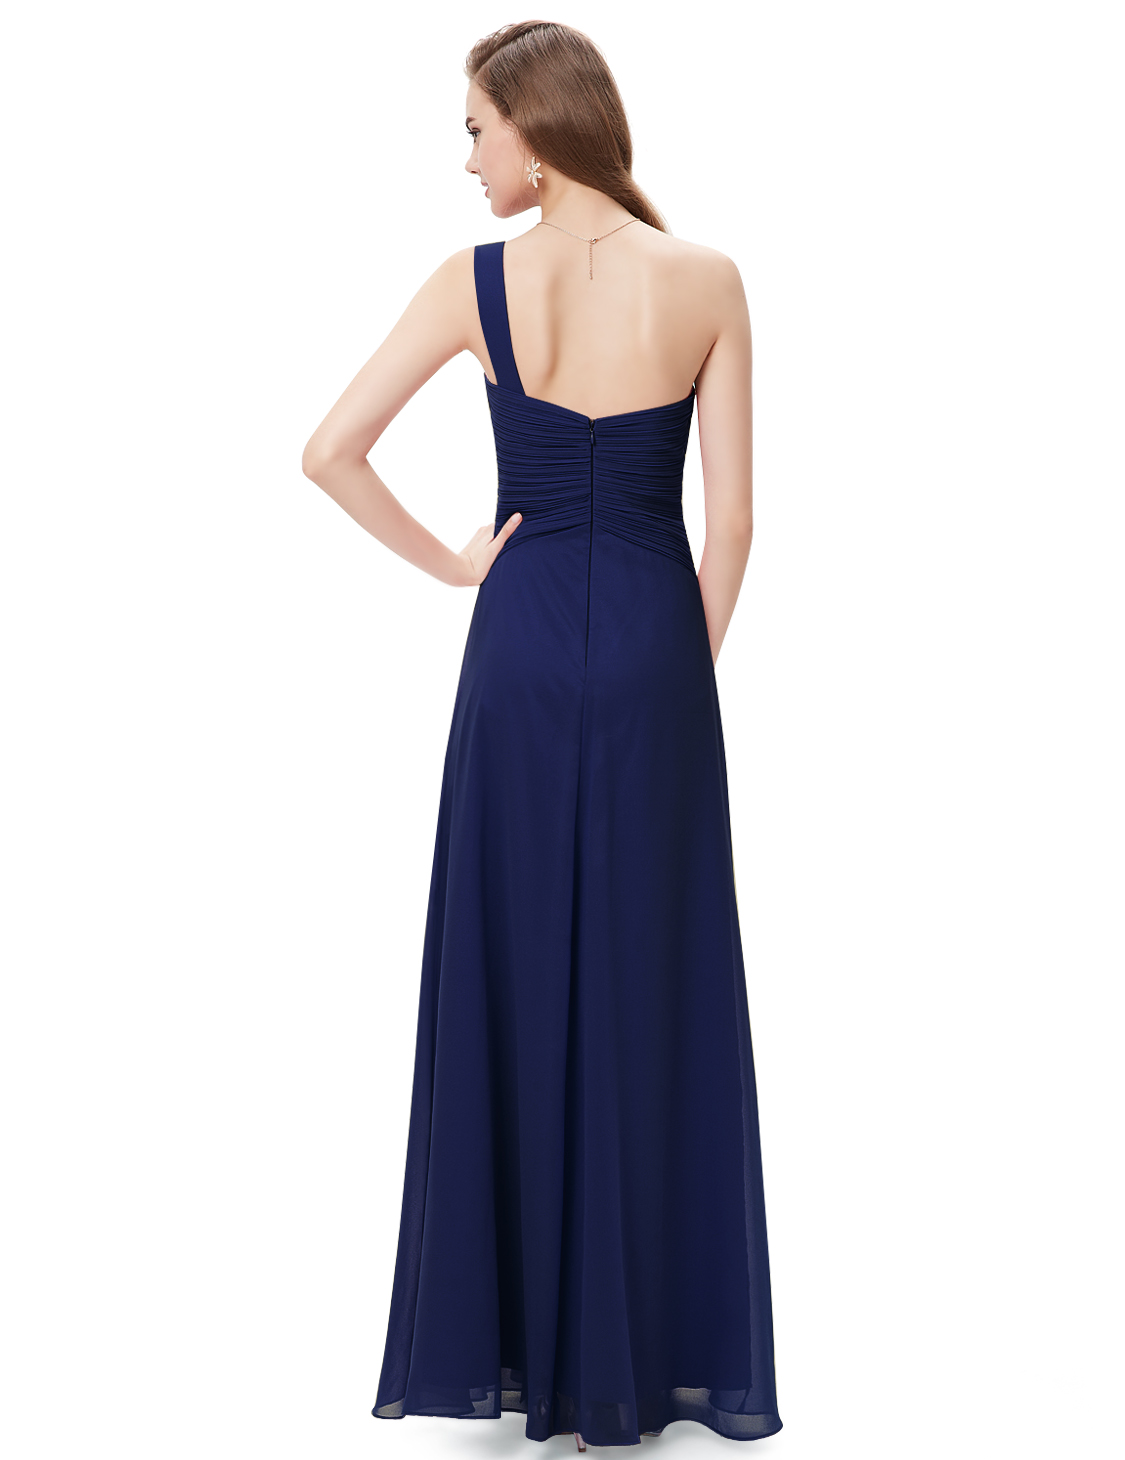 One shoulder bridesmaid dress mother of bride wedding for Ebay wedding bridesmaid dresses